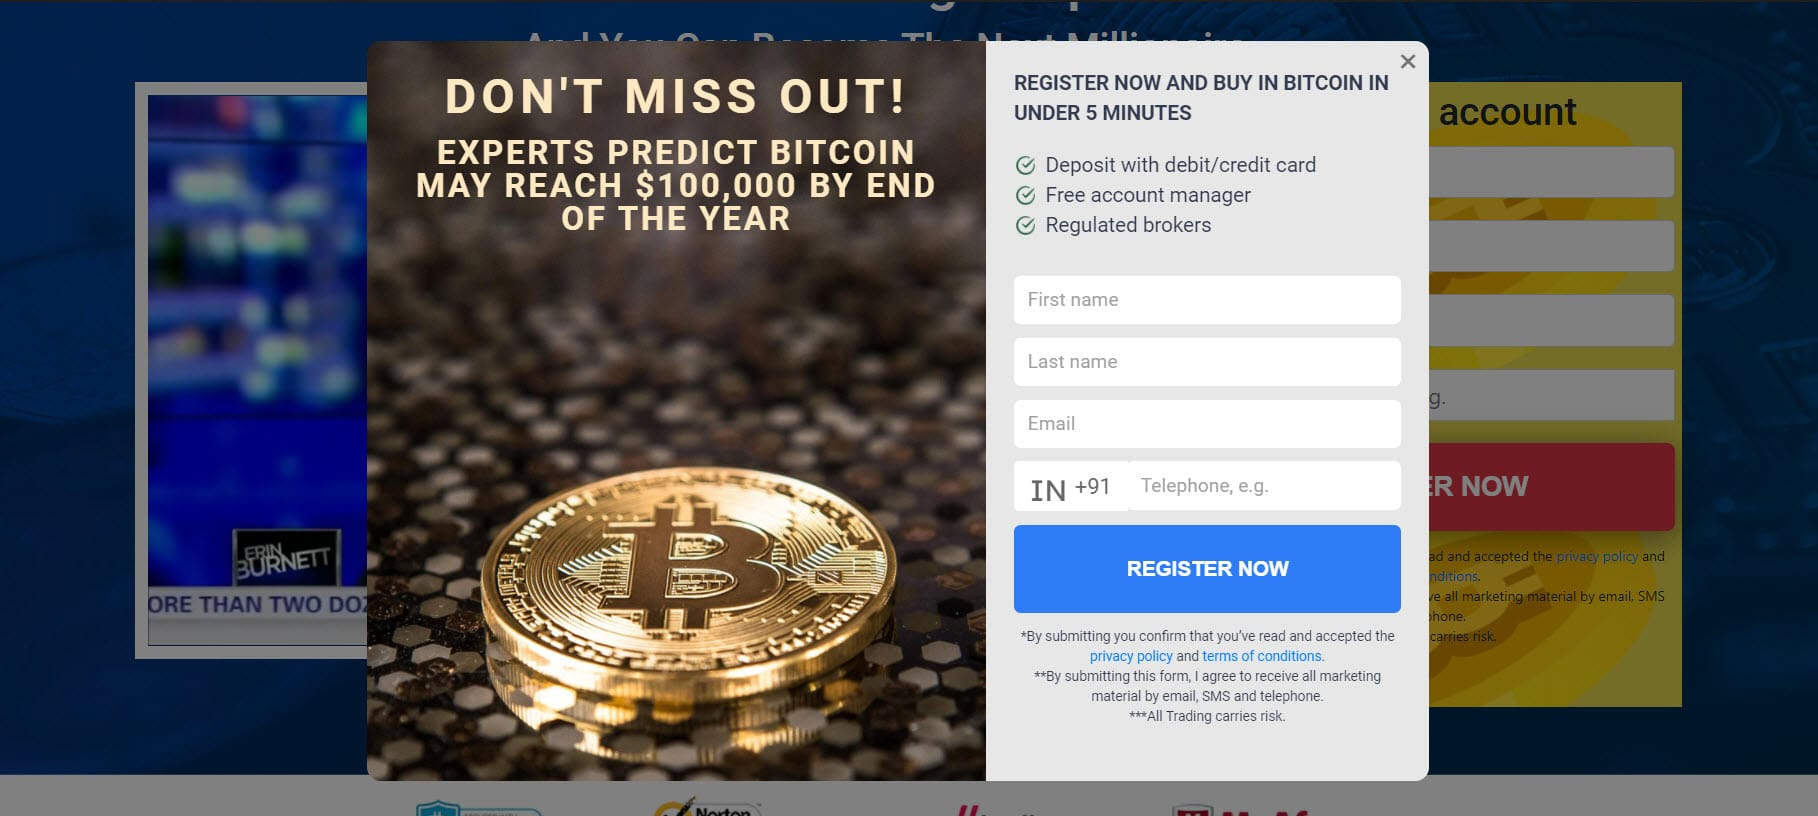 Bitcoin Revolution Review 2021: Is it Legit, or is it a Scam?